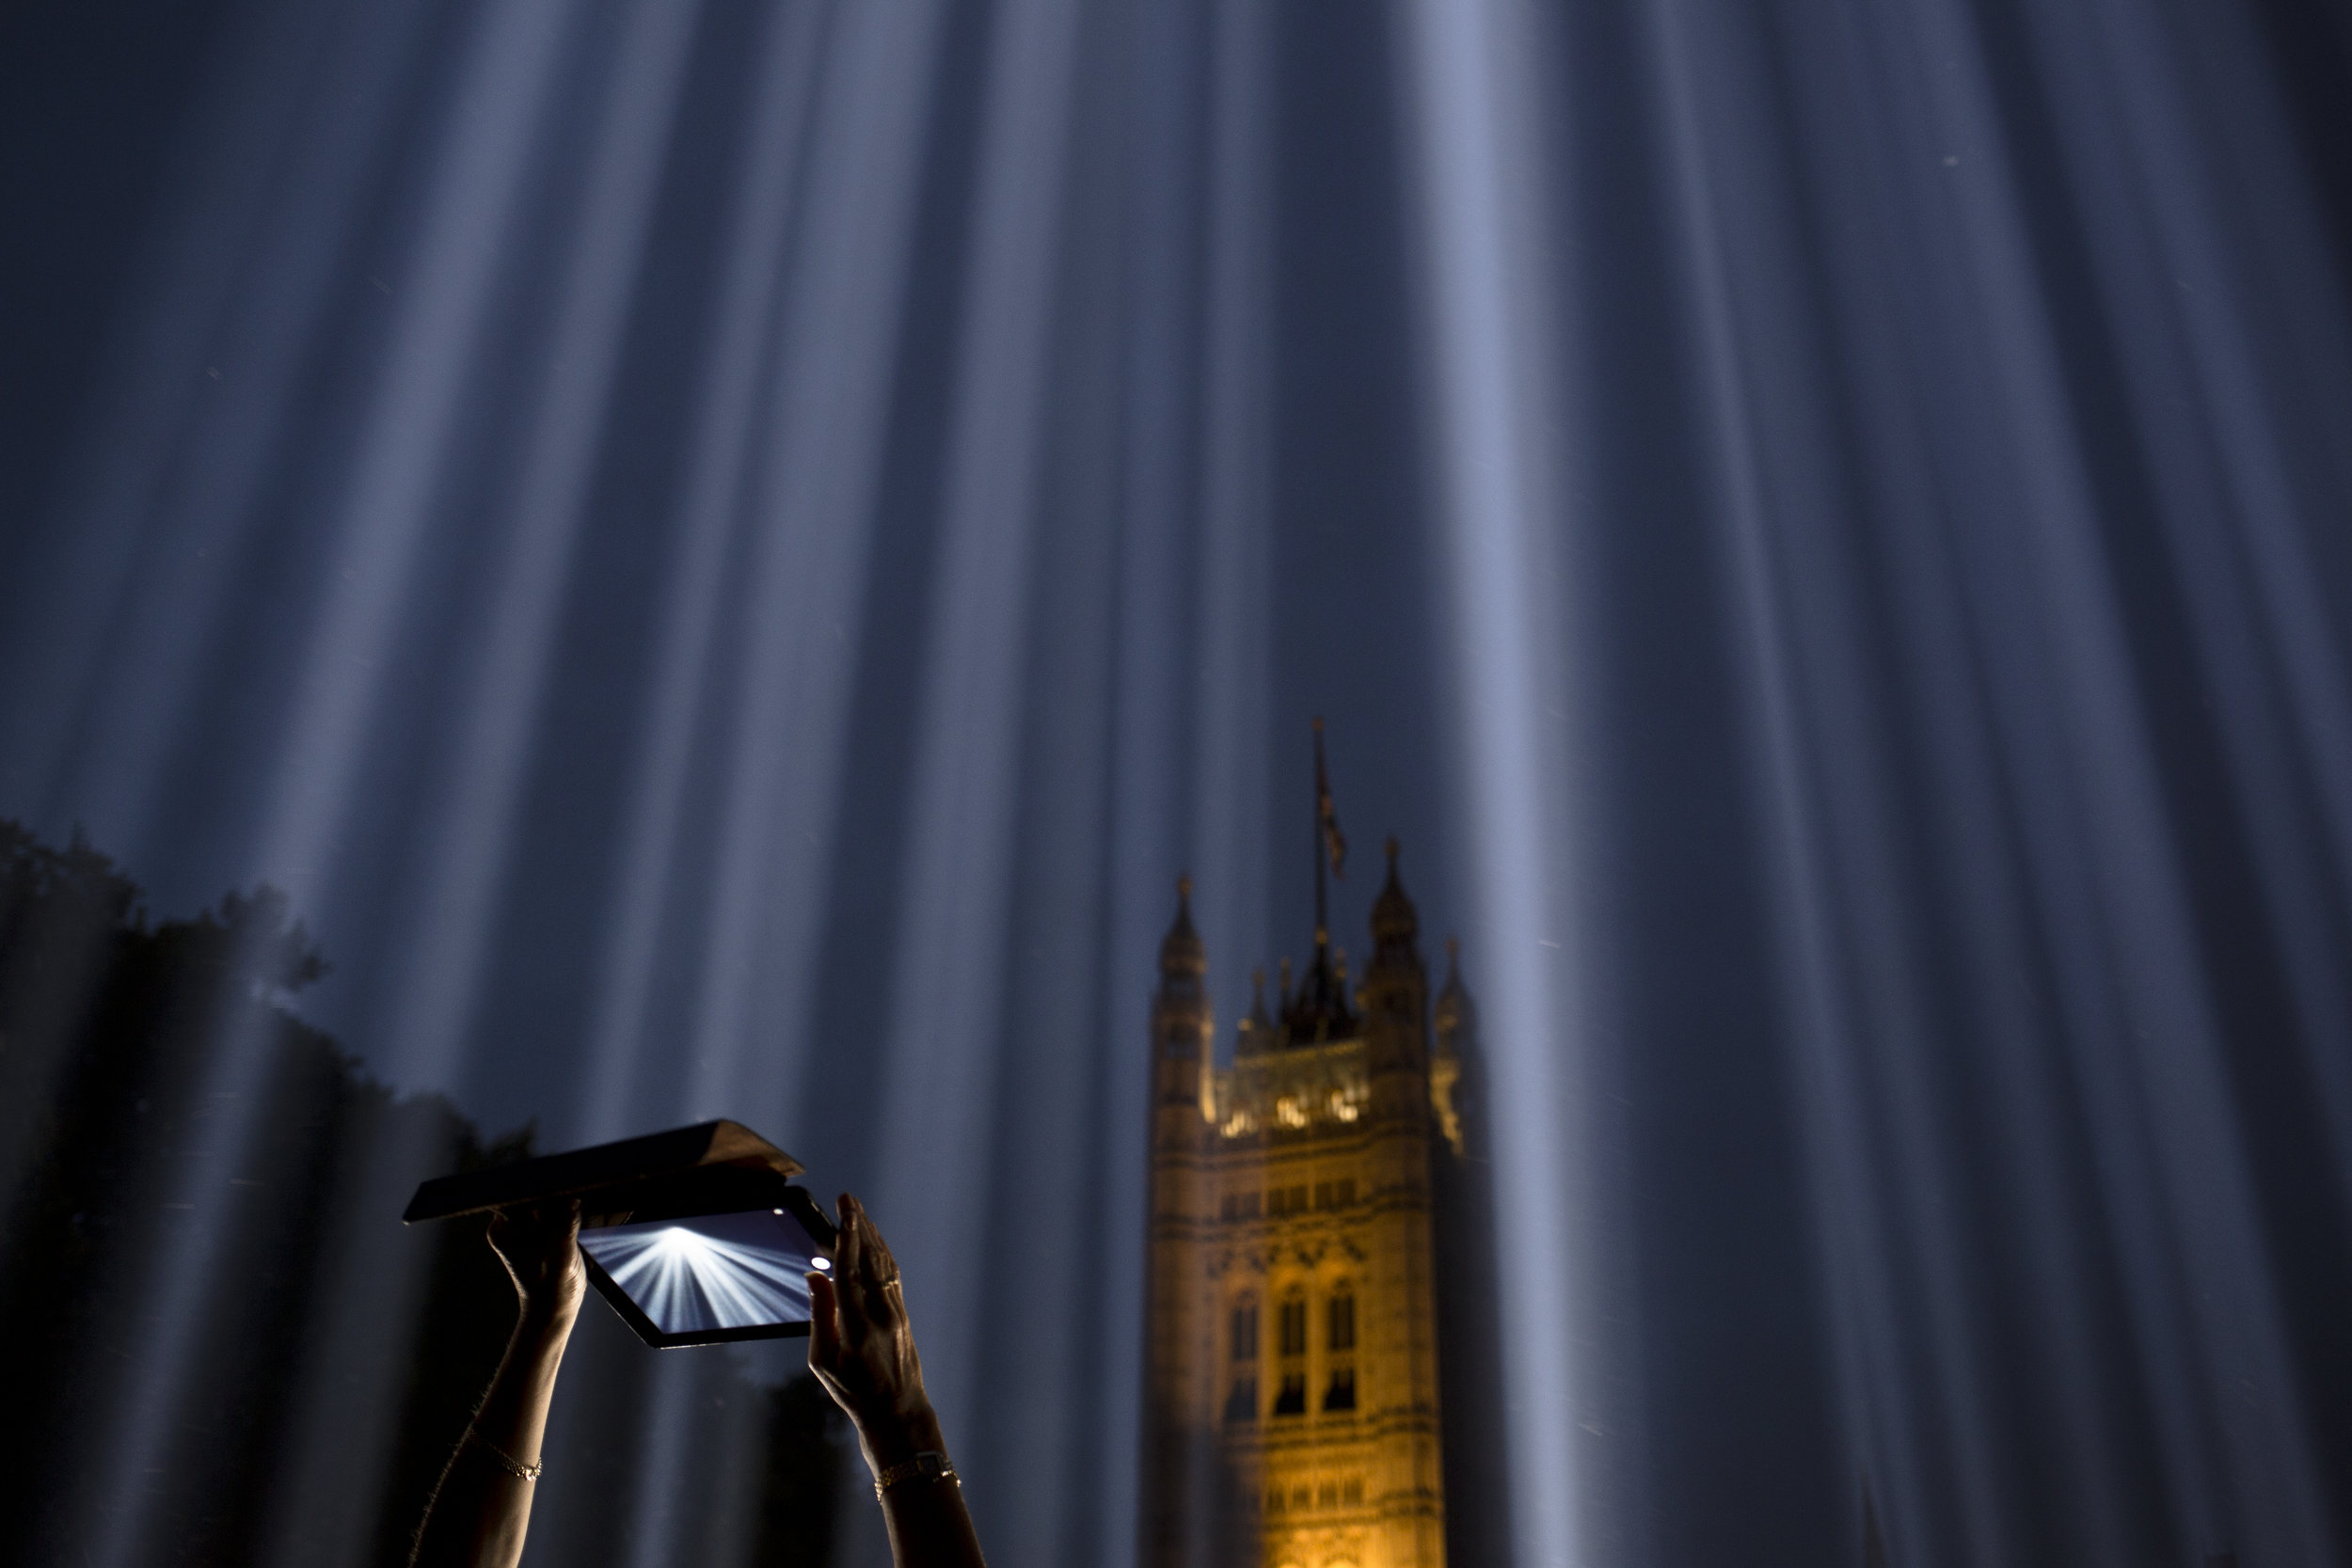 """A woman uses a tablet to photograph shafts of light piercing the night sky at an installation entitled """"Spectra"""" by Japanese artist Ryoji Ikeda outside the Houses of Parliament, London, Tuesday, Aug. 5, 2014. (AP Photo/David Azia)"""